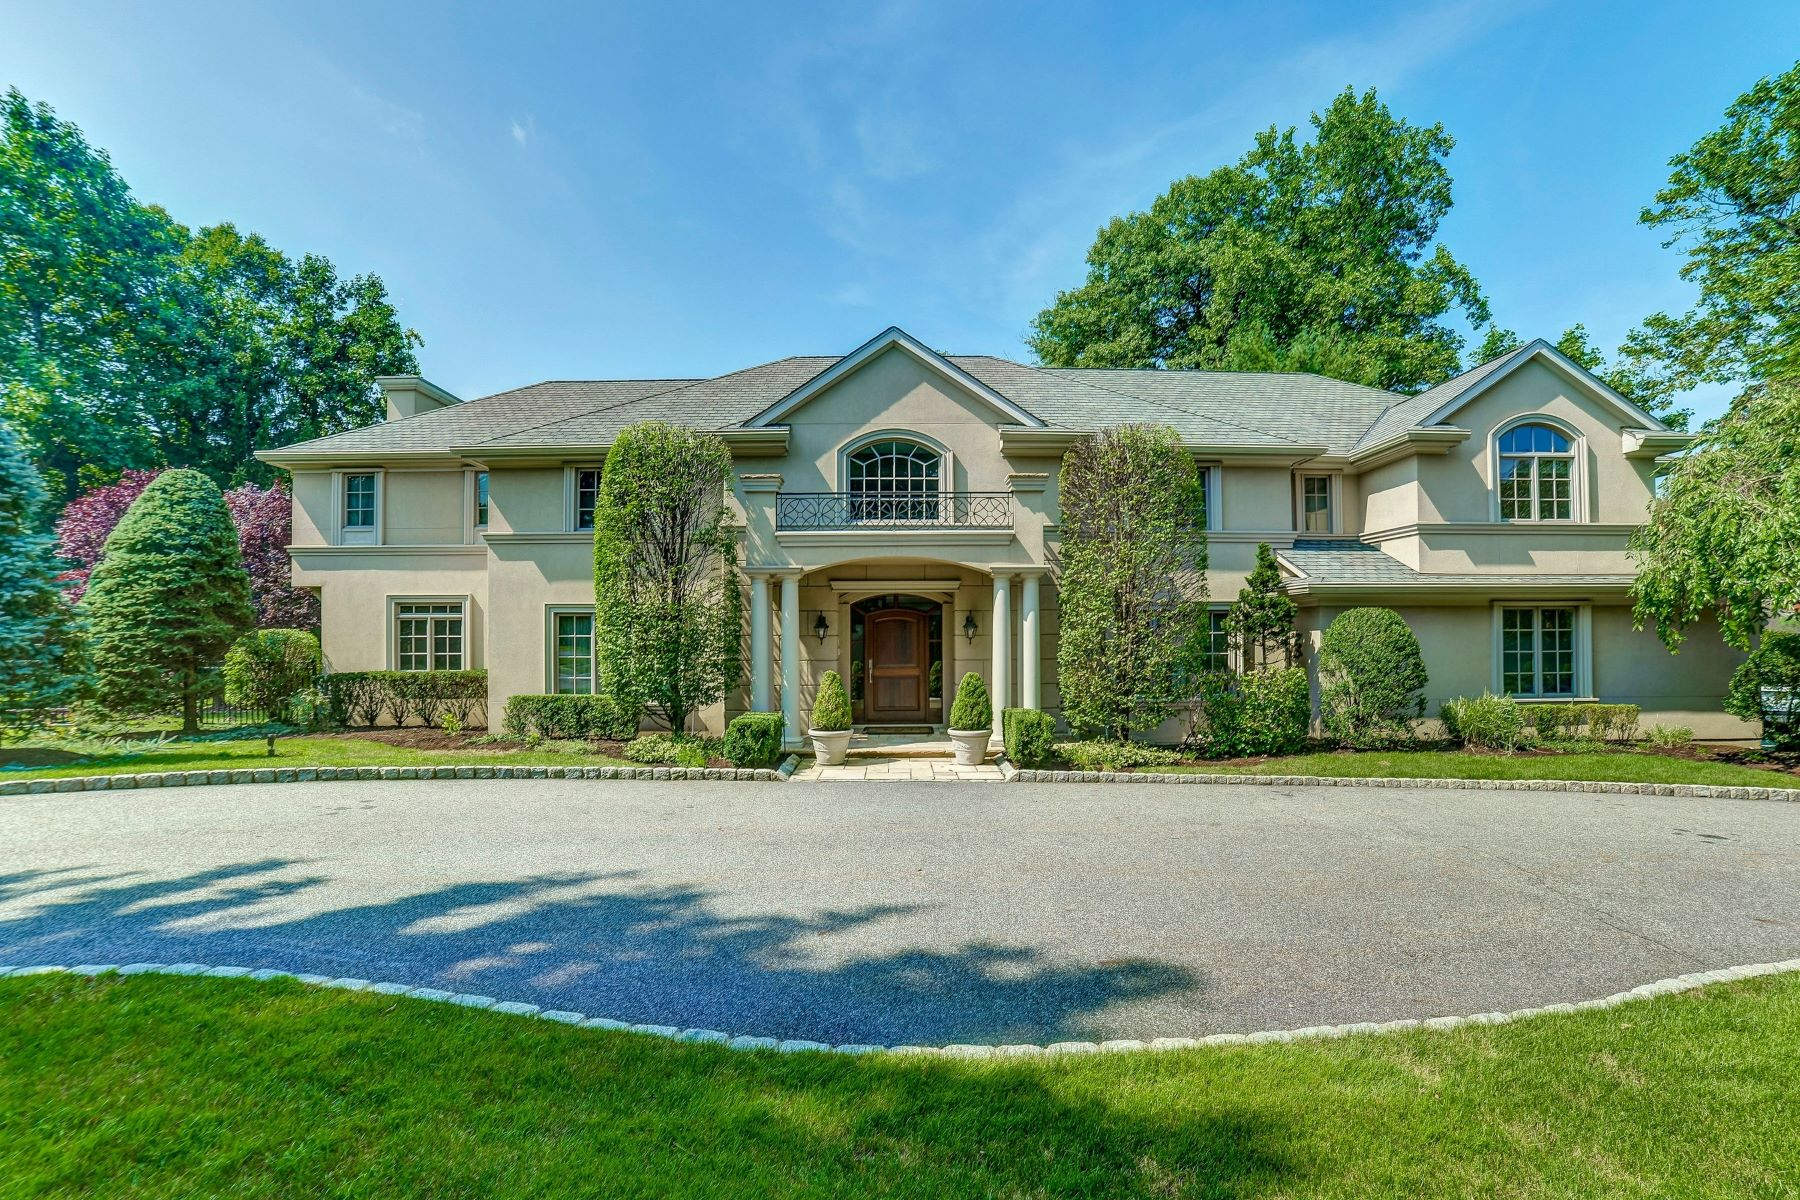 Single Family Home for Sale at Prestigious Colonial 257 Truman Dr, Cresskill, New Jersey 07626 United States